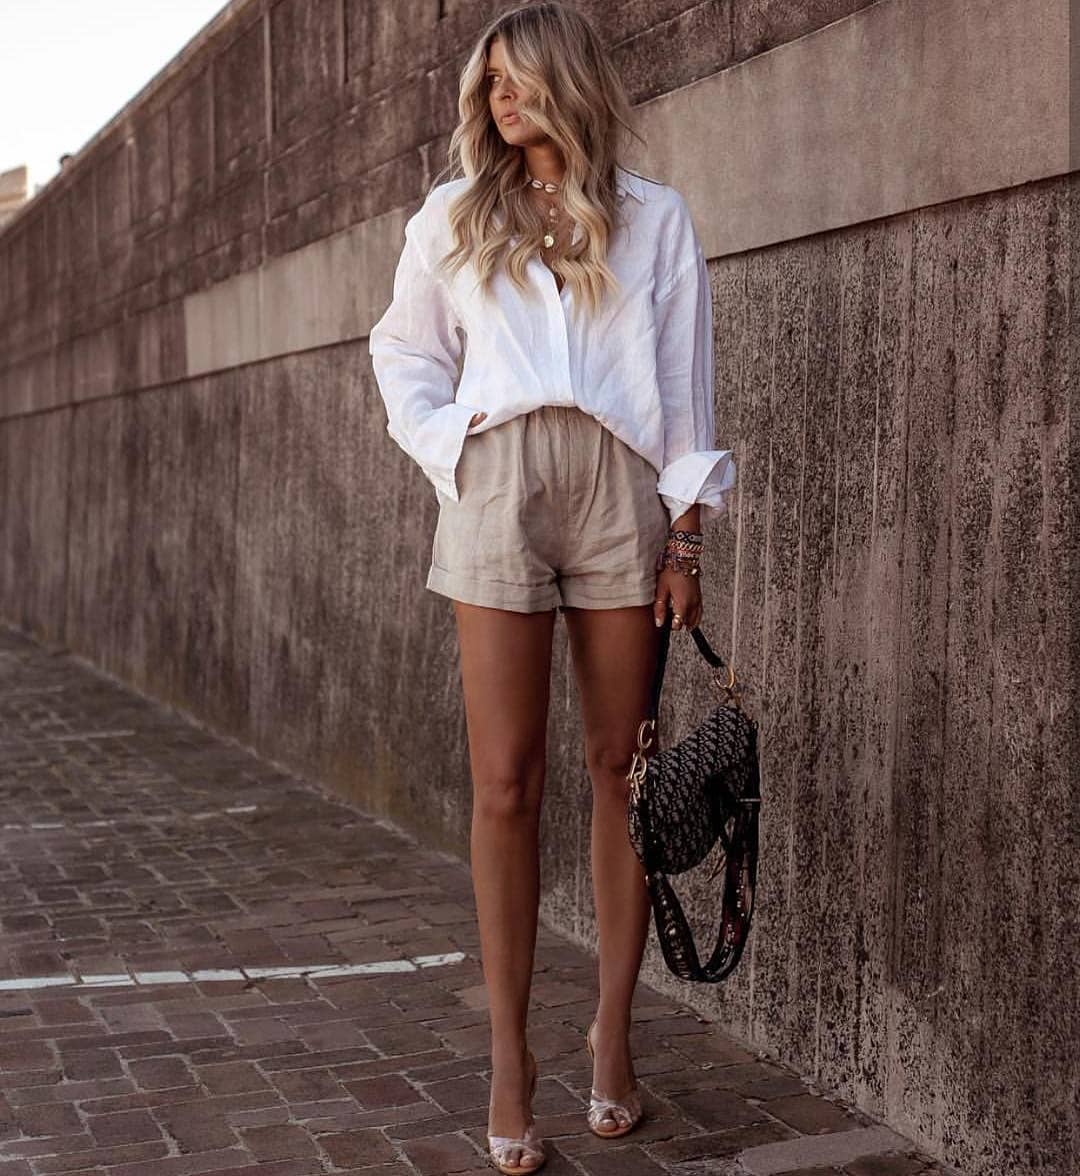 Oversized Shirt In White Tucked In Khaki Desert Shorts For Summer 2020